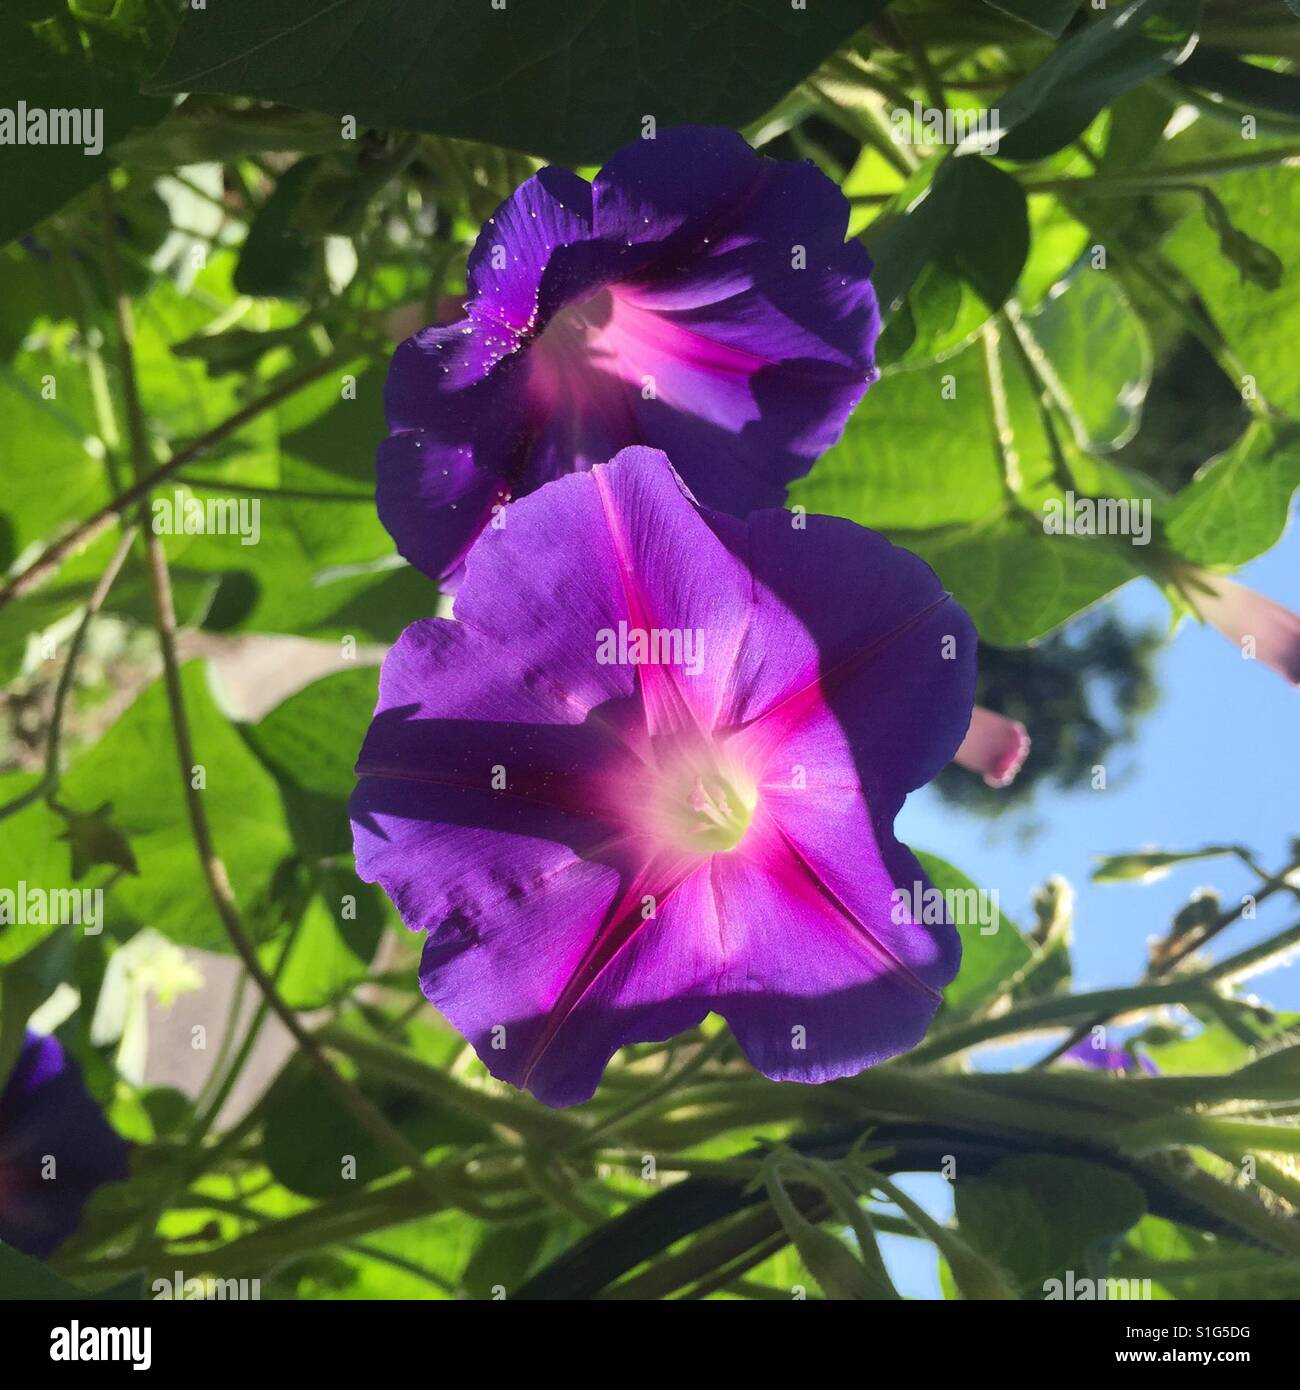 Beautiful morning glories blooming in the sunshine. - Stock Image